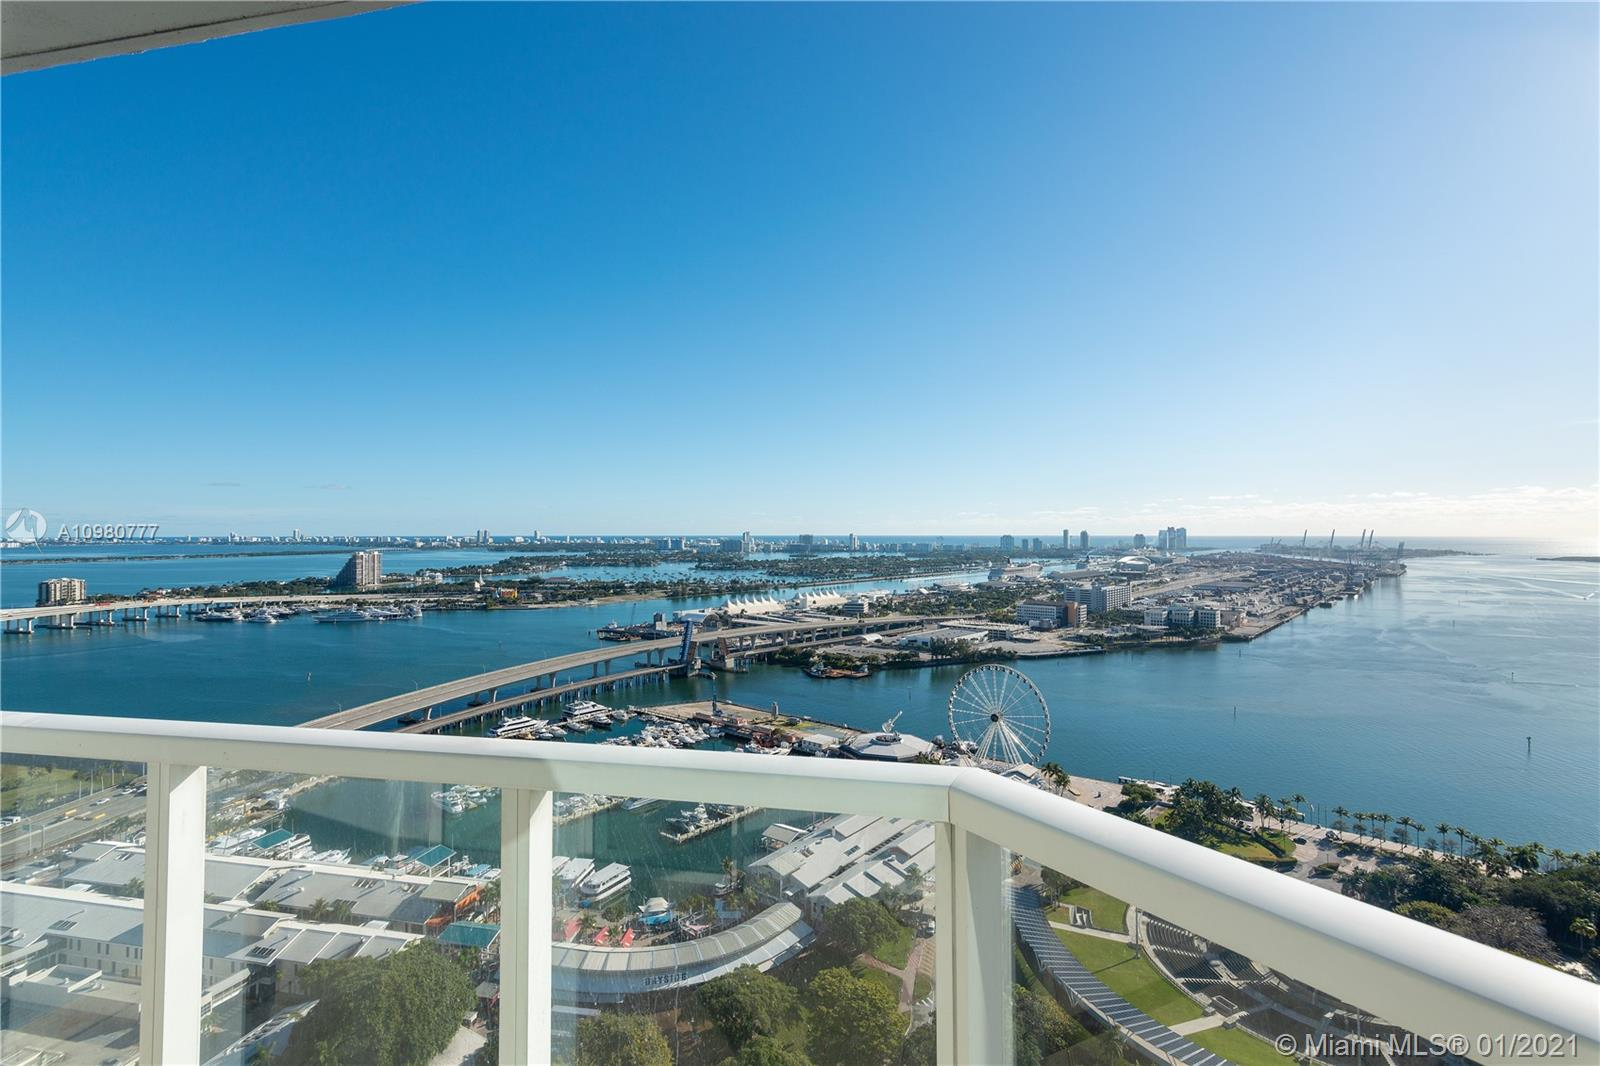 This incredible large 2 Bedroom plus a Den features a direct East water view with panoramic and unobstructed view of the Bay. 1,363 SF with two balconies with the best views of Downtown, fully furnished. The Clubhouse here is absolutely incredible , four-story, 35,000 square-foot  overloaded with health, fitness, beauty and wellness possibilities. The entire first floor is dedicated to spa and salon services. The second floor is a world-class fitness center. The third floor is a private Clubhouse. And way up top on the fourth floor is an outdoor running track. Vizcayne allows Monthly rentals.